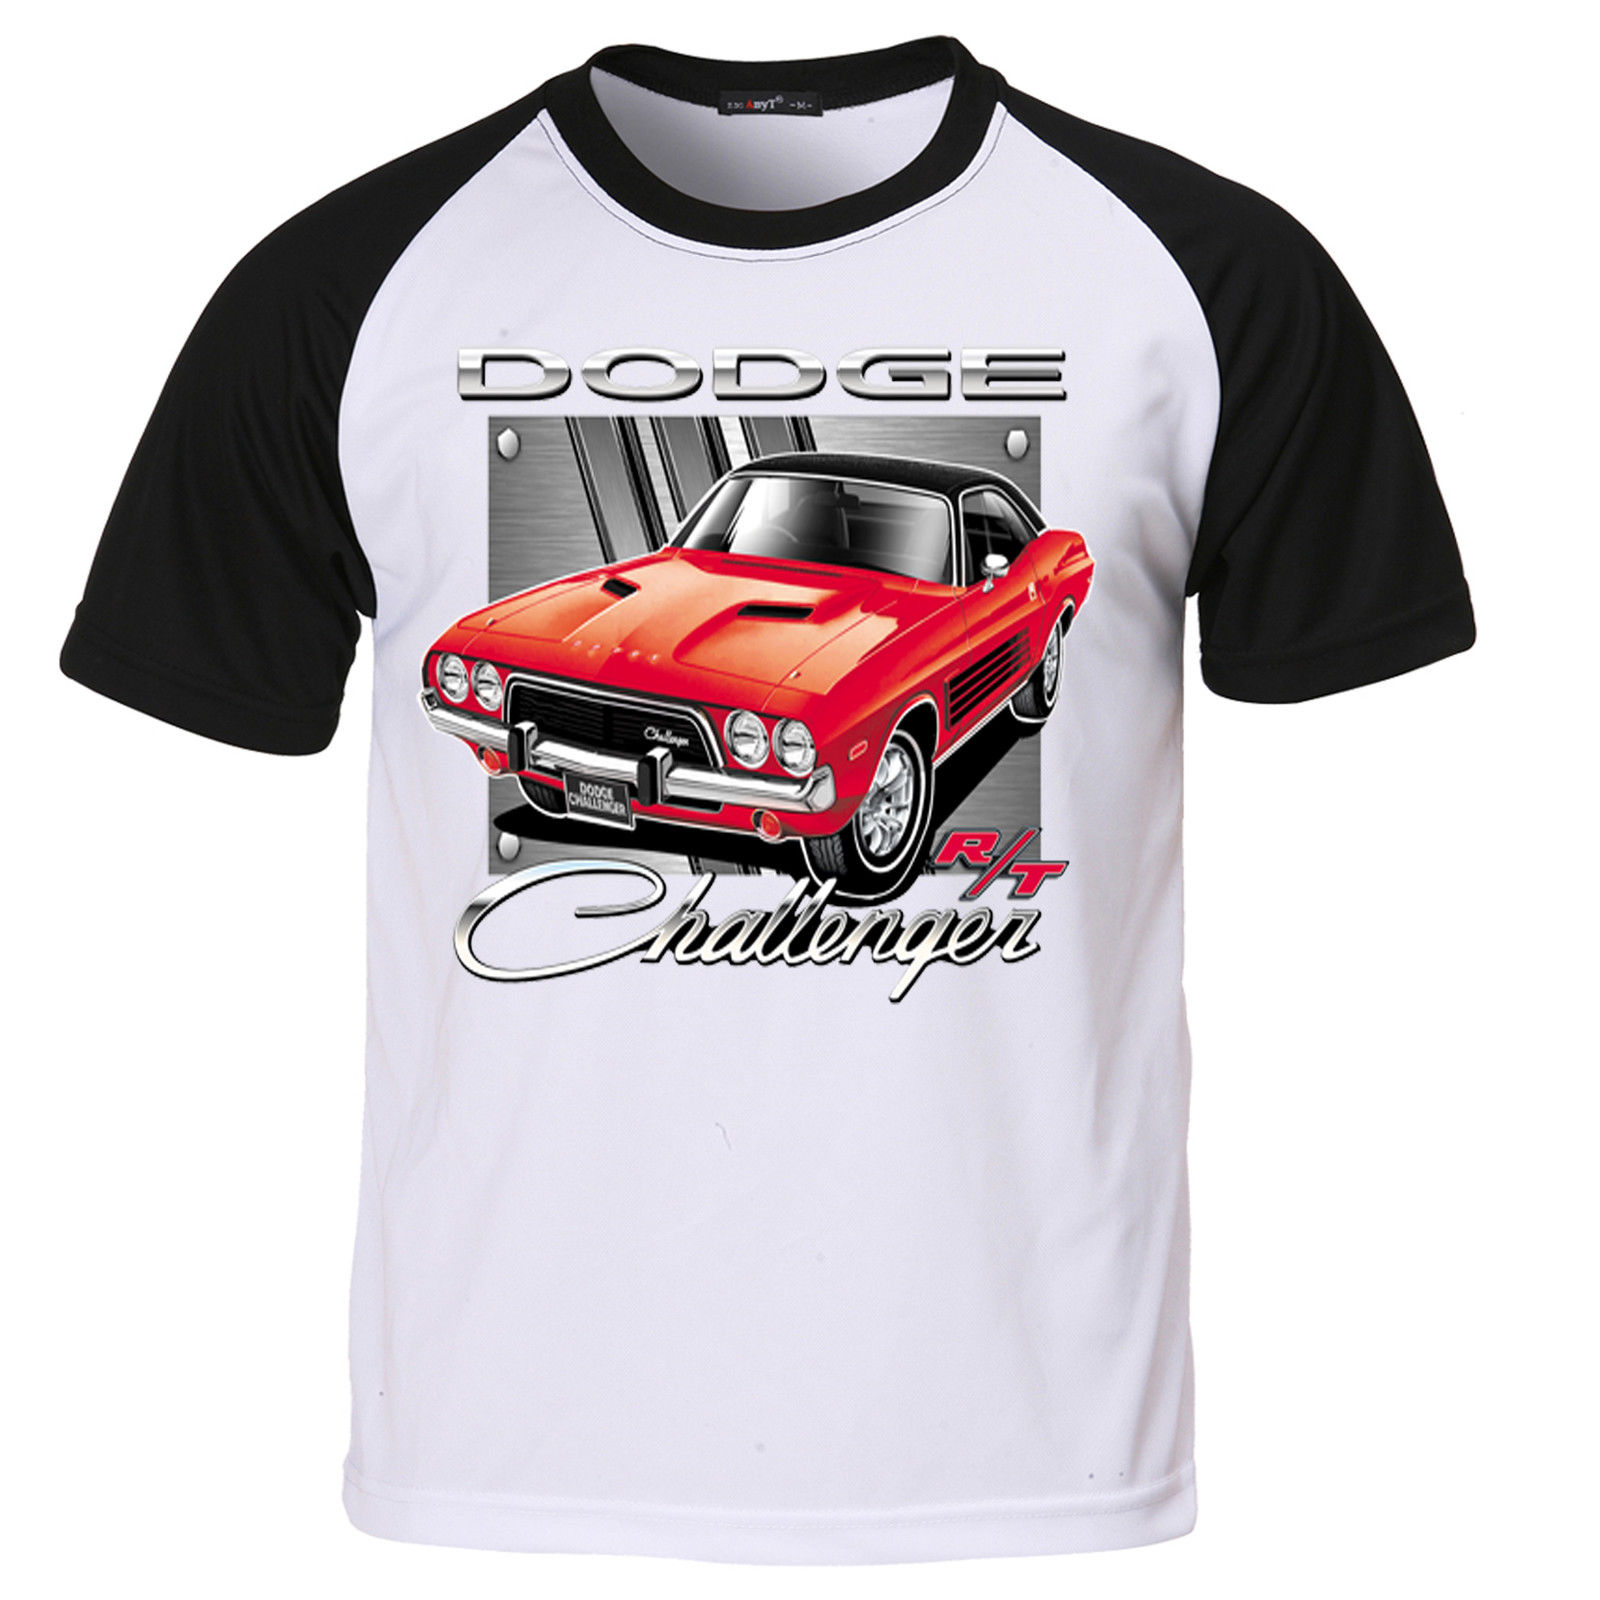 Dodge challenger t shirt american vintage classic v8 mopar for All american classic shirt